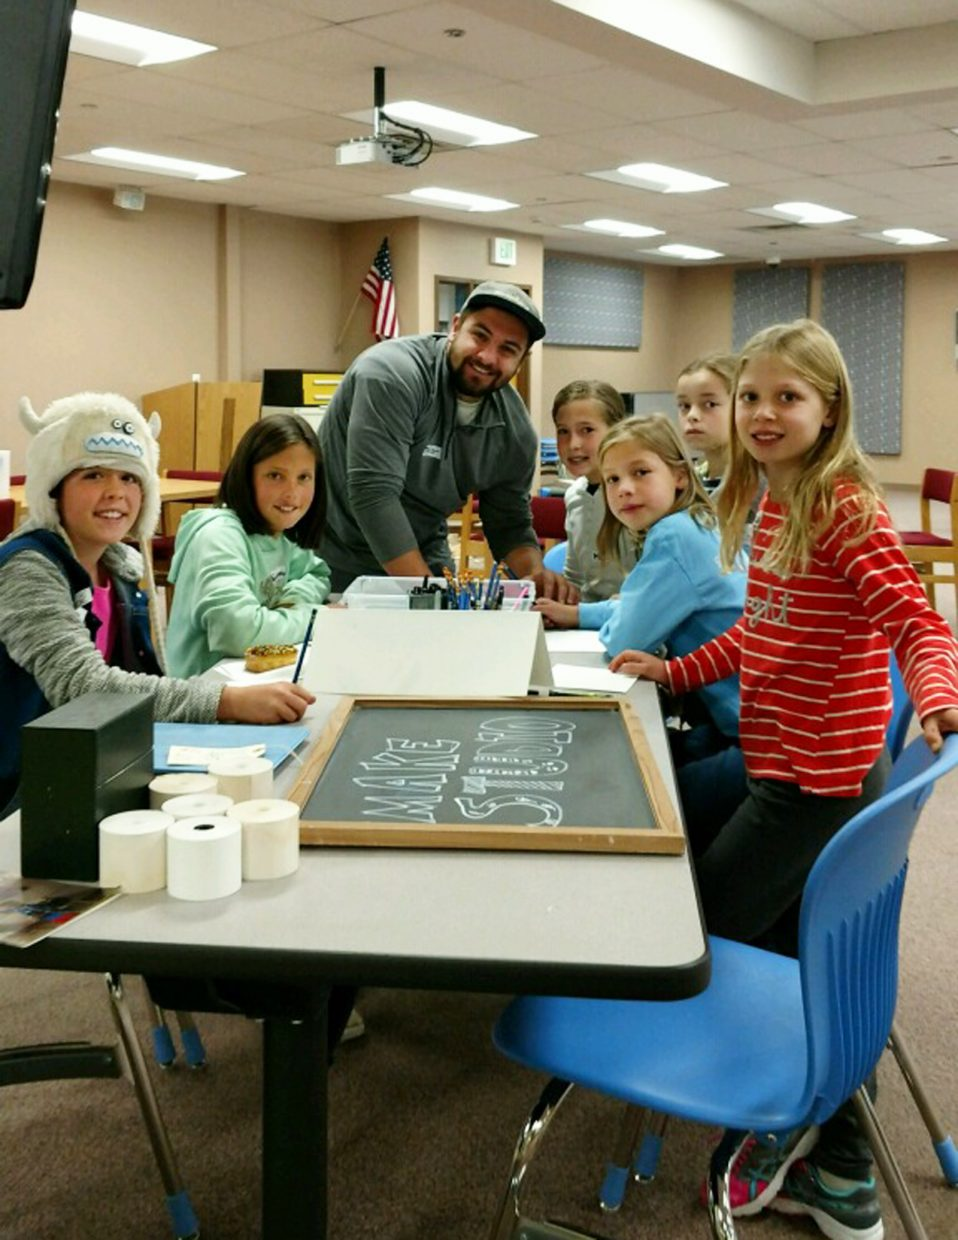 Students in third through seventh grade learned about fiber arts, comic strips and other arts during a MakerSpace celebration at Steamboat Springs High School on Thursday.